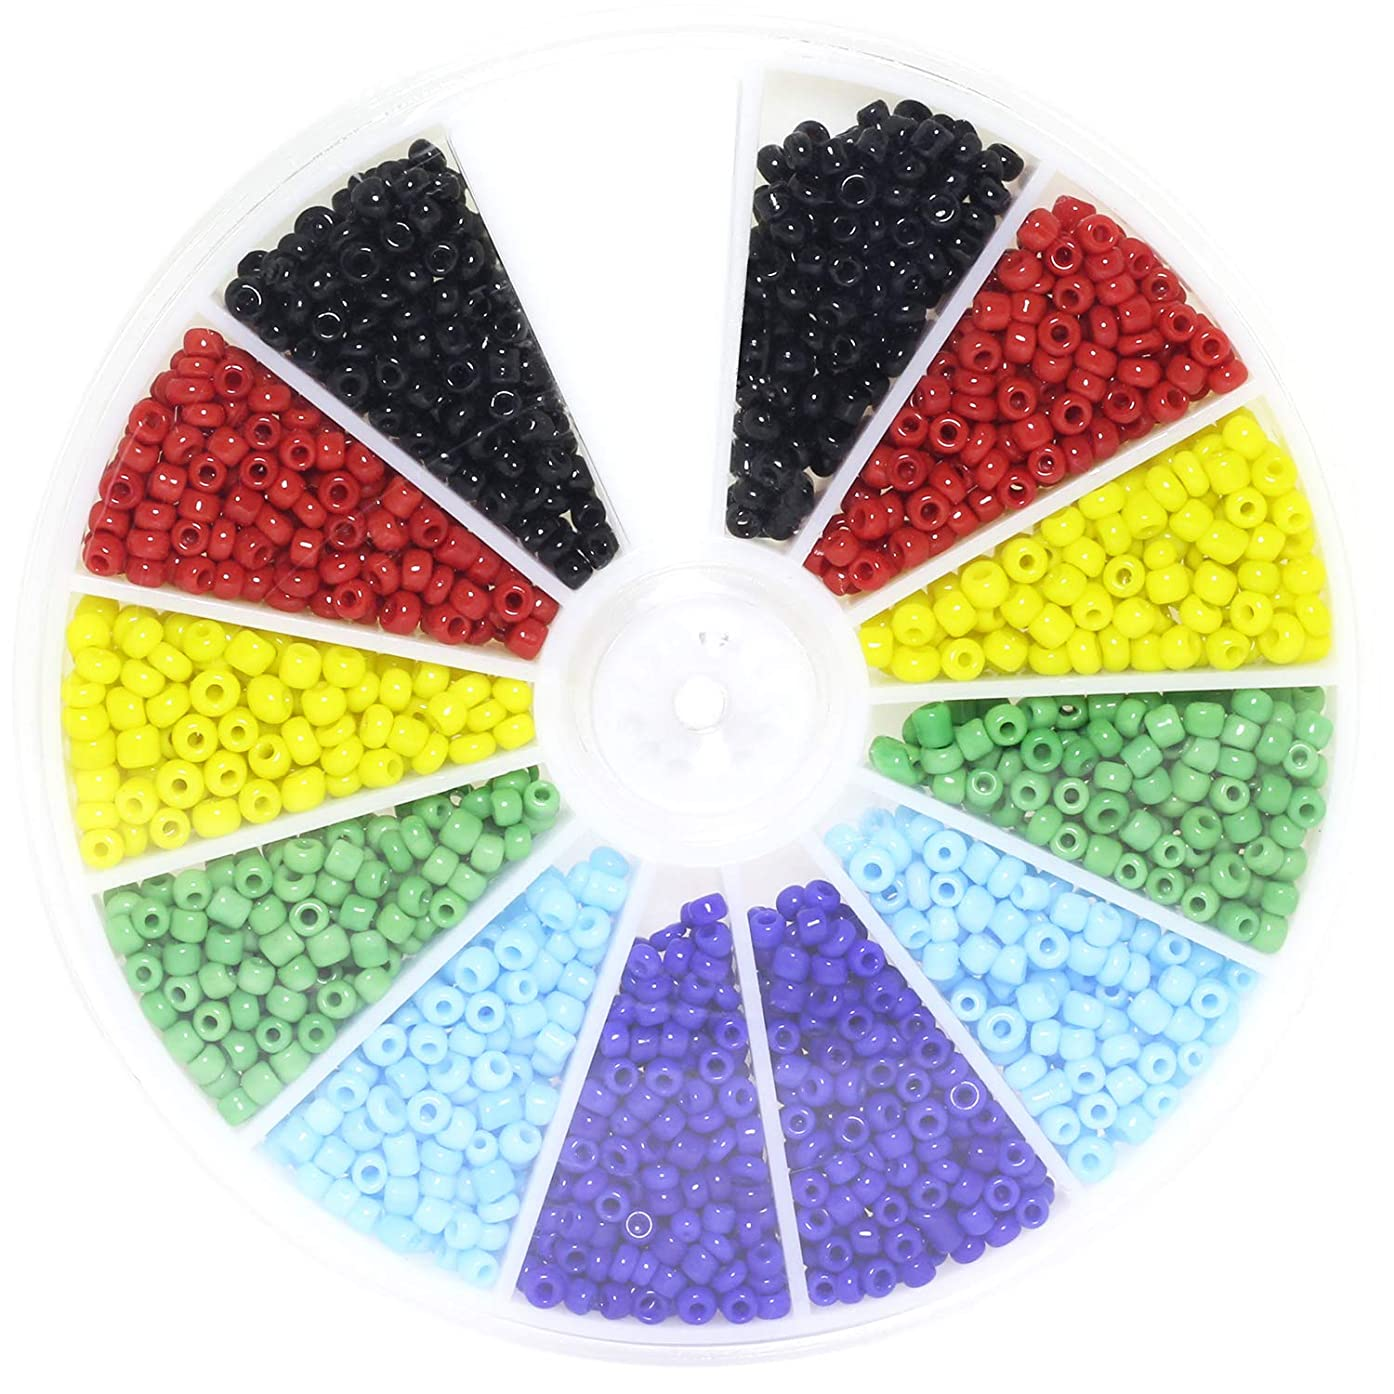 Lind Kitchen 1000pcs Mini Glass Beads DIY Handmade Jewellery Beading Fittings Loose Seed Spacer Beads 2mm 6-Color Mixed (Black, Red, Yellow, Green, Light Blue, Dark Blue)